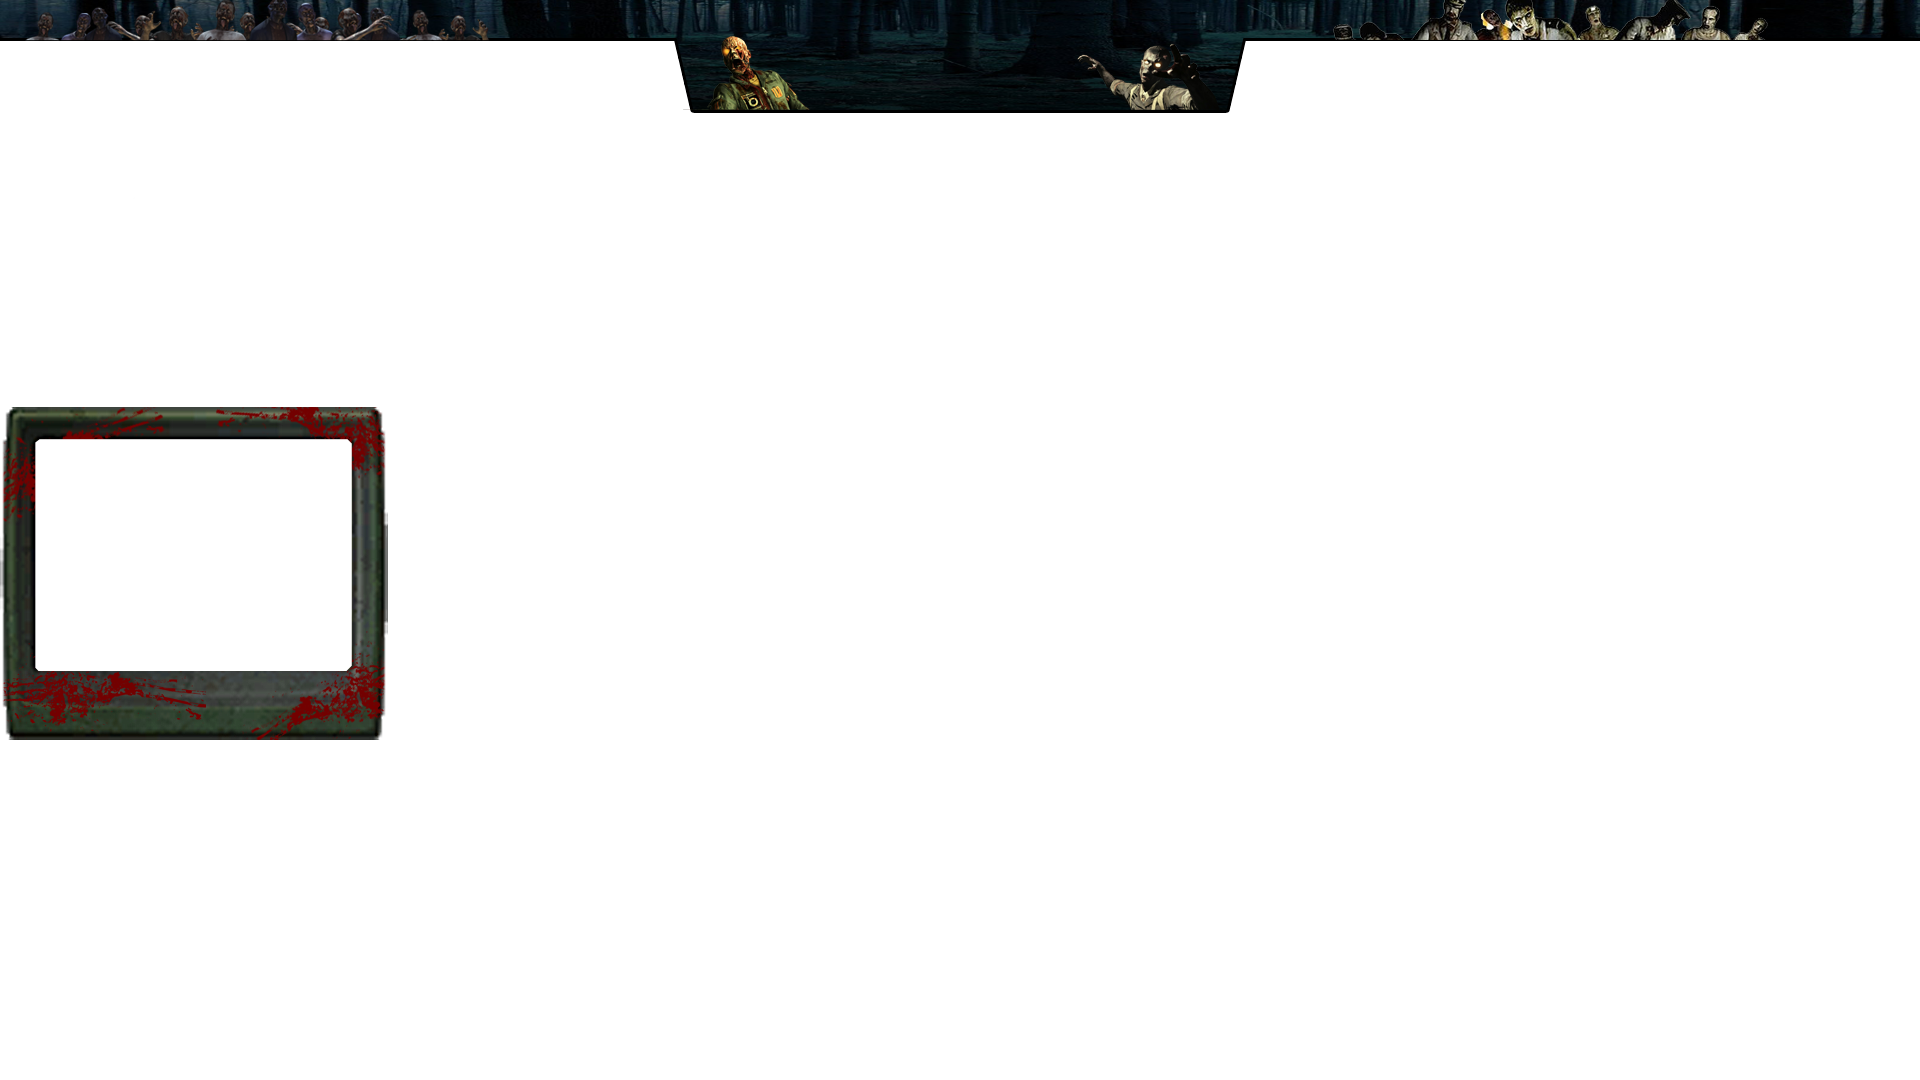 Zombie twitch overlay by kaffemlg on deviantart for Free twitch overlay template